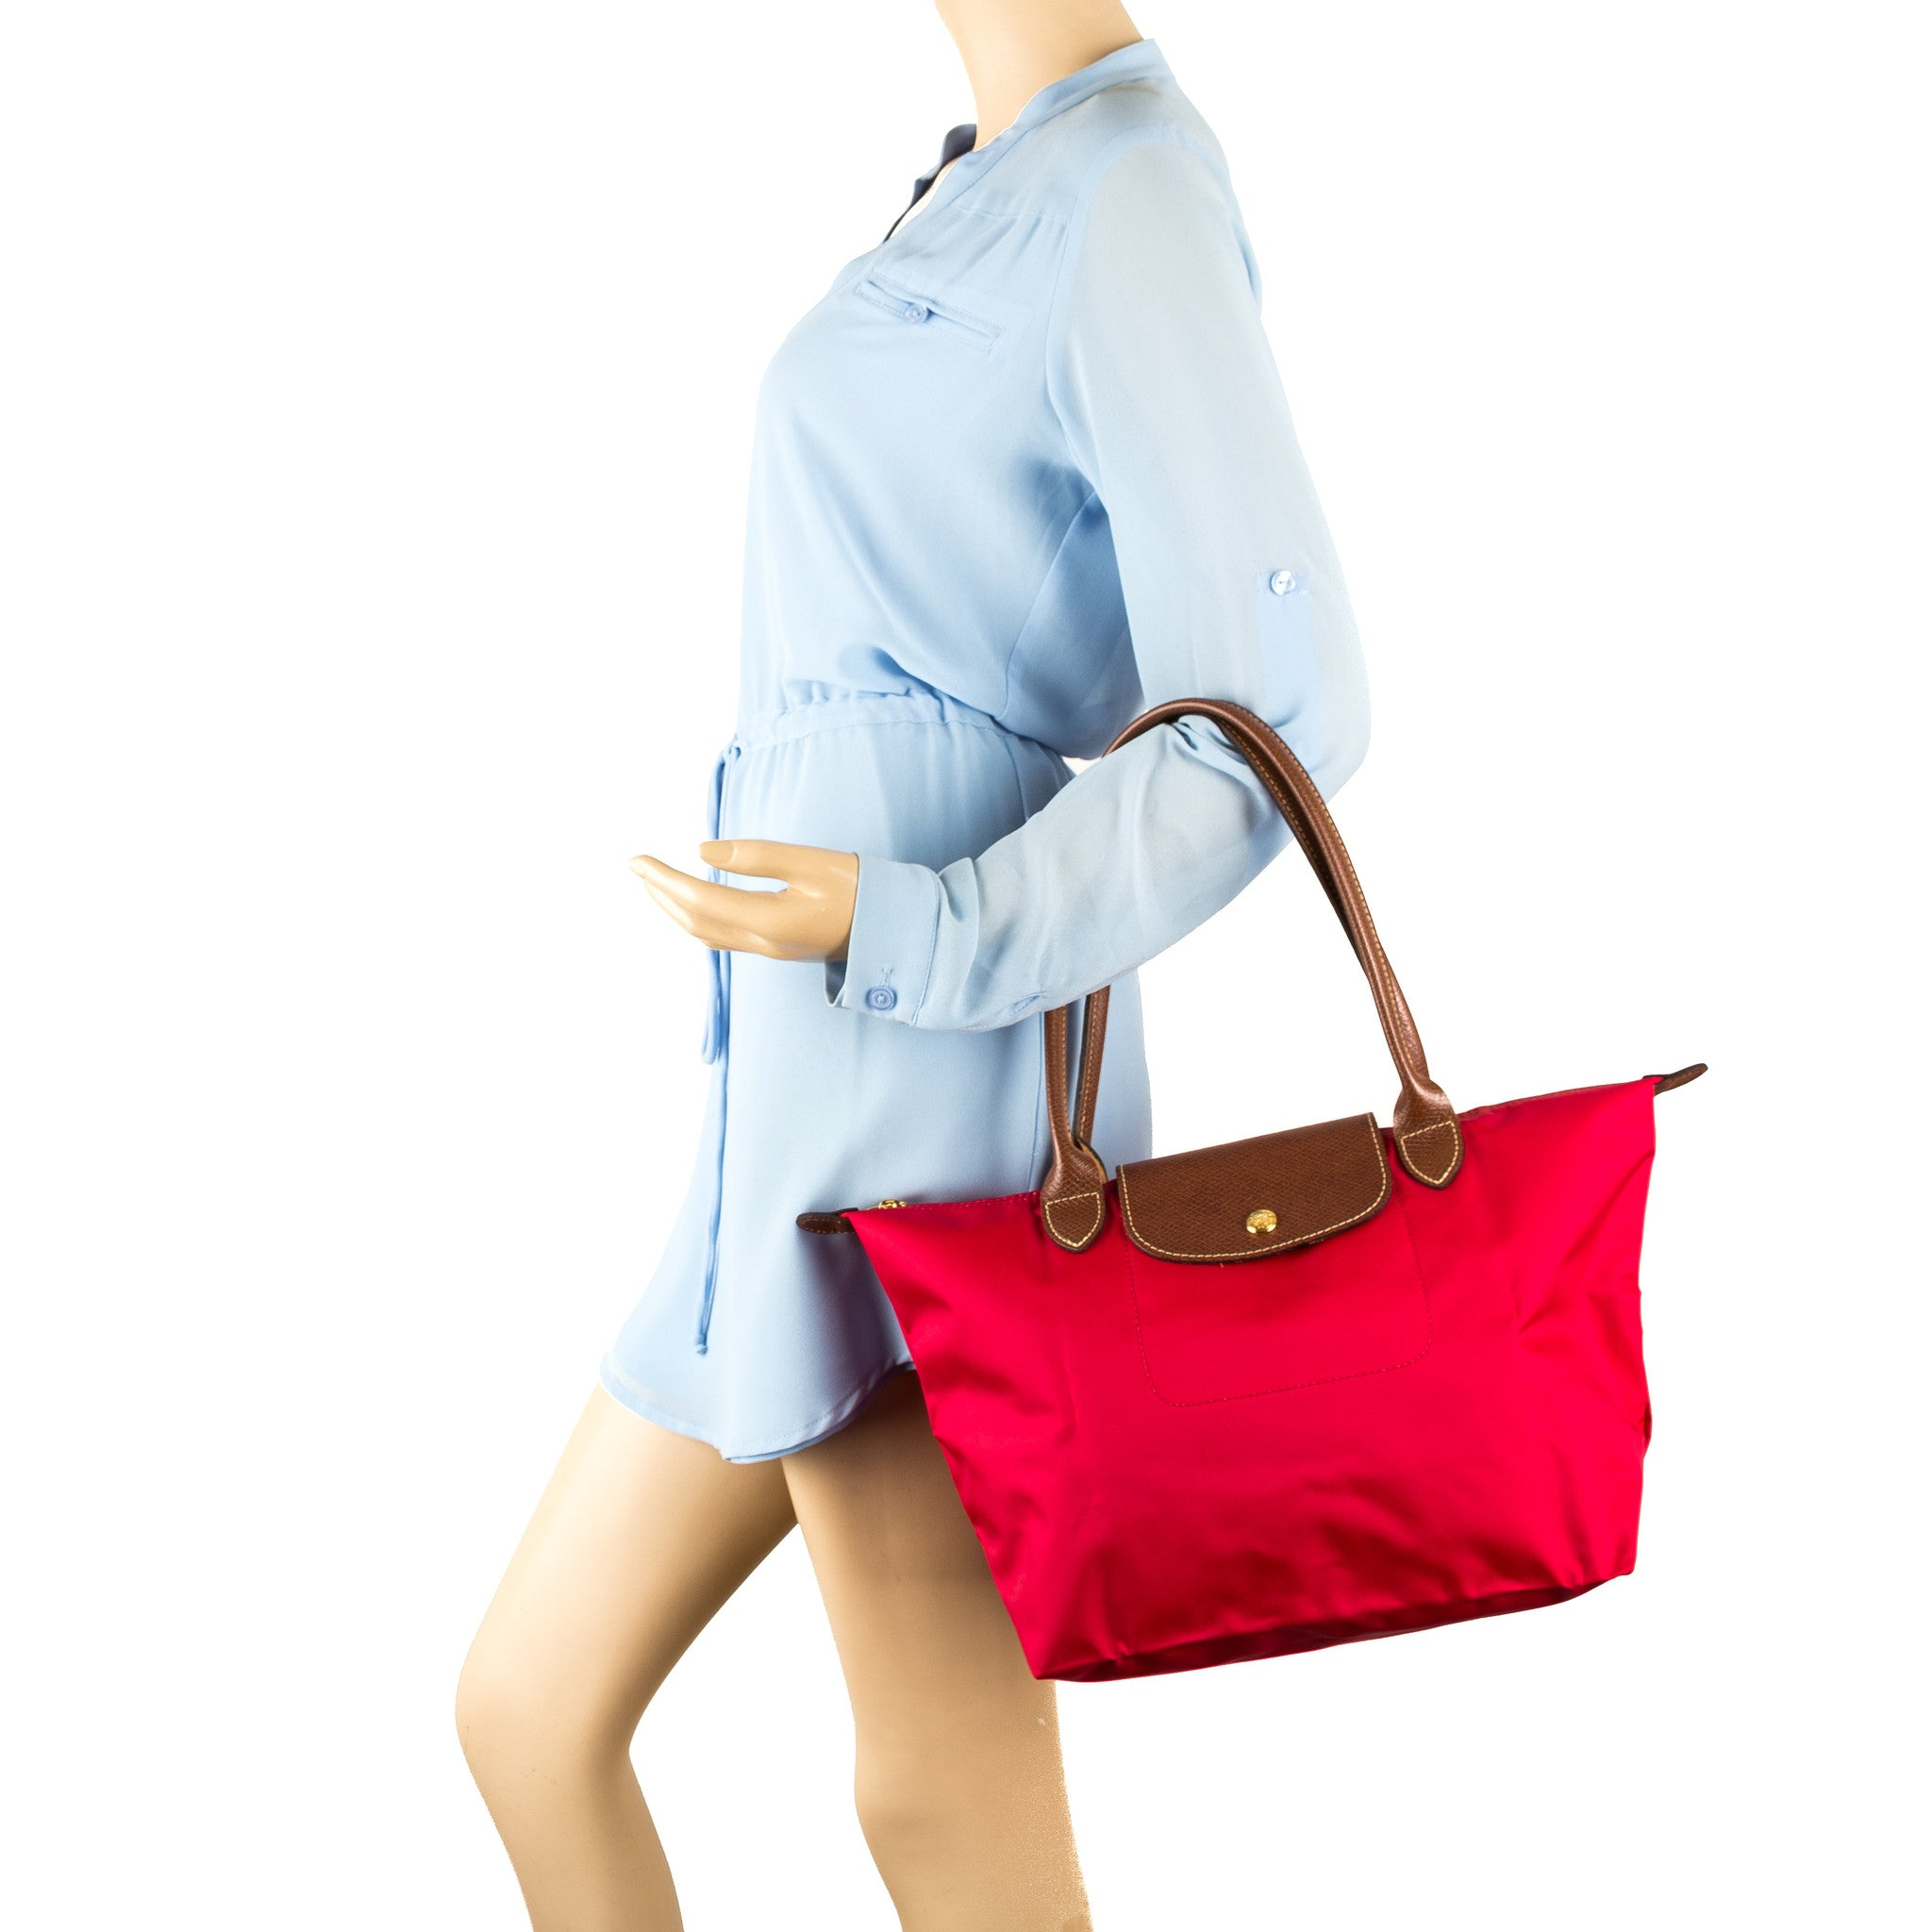 f541f6b4548c Longchamp Red Garance Nylon Le Pliage Small Tote Bag (New with Tags ...